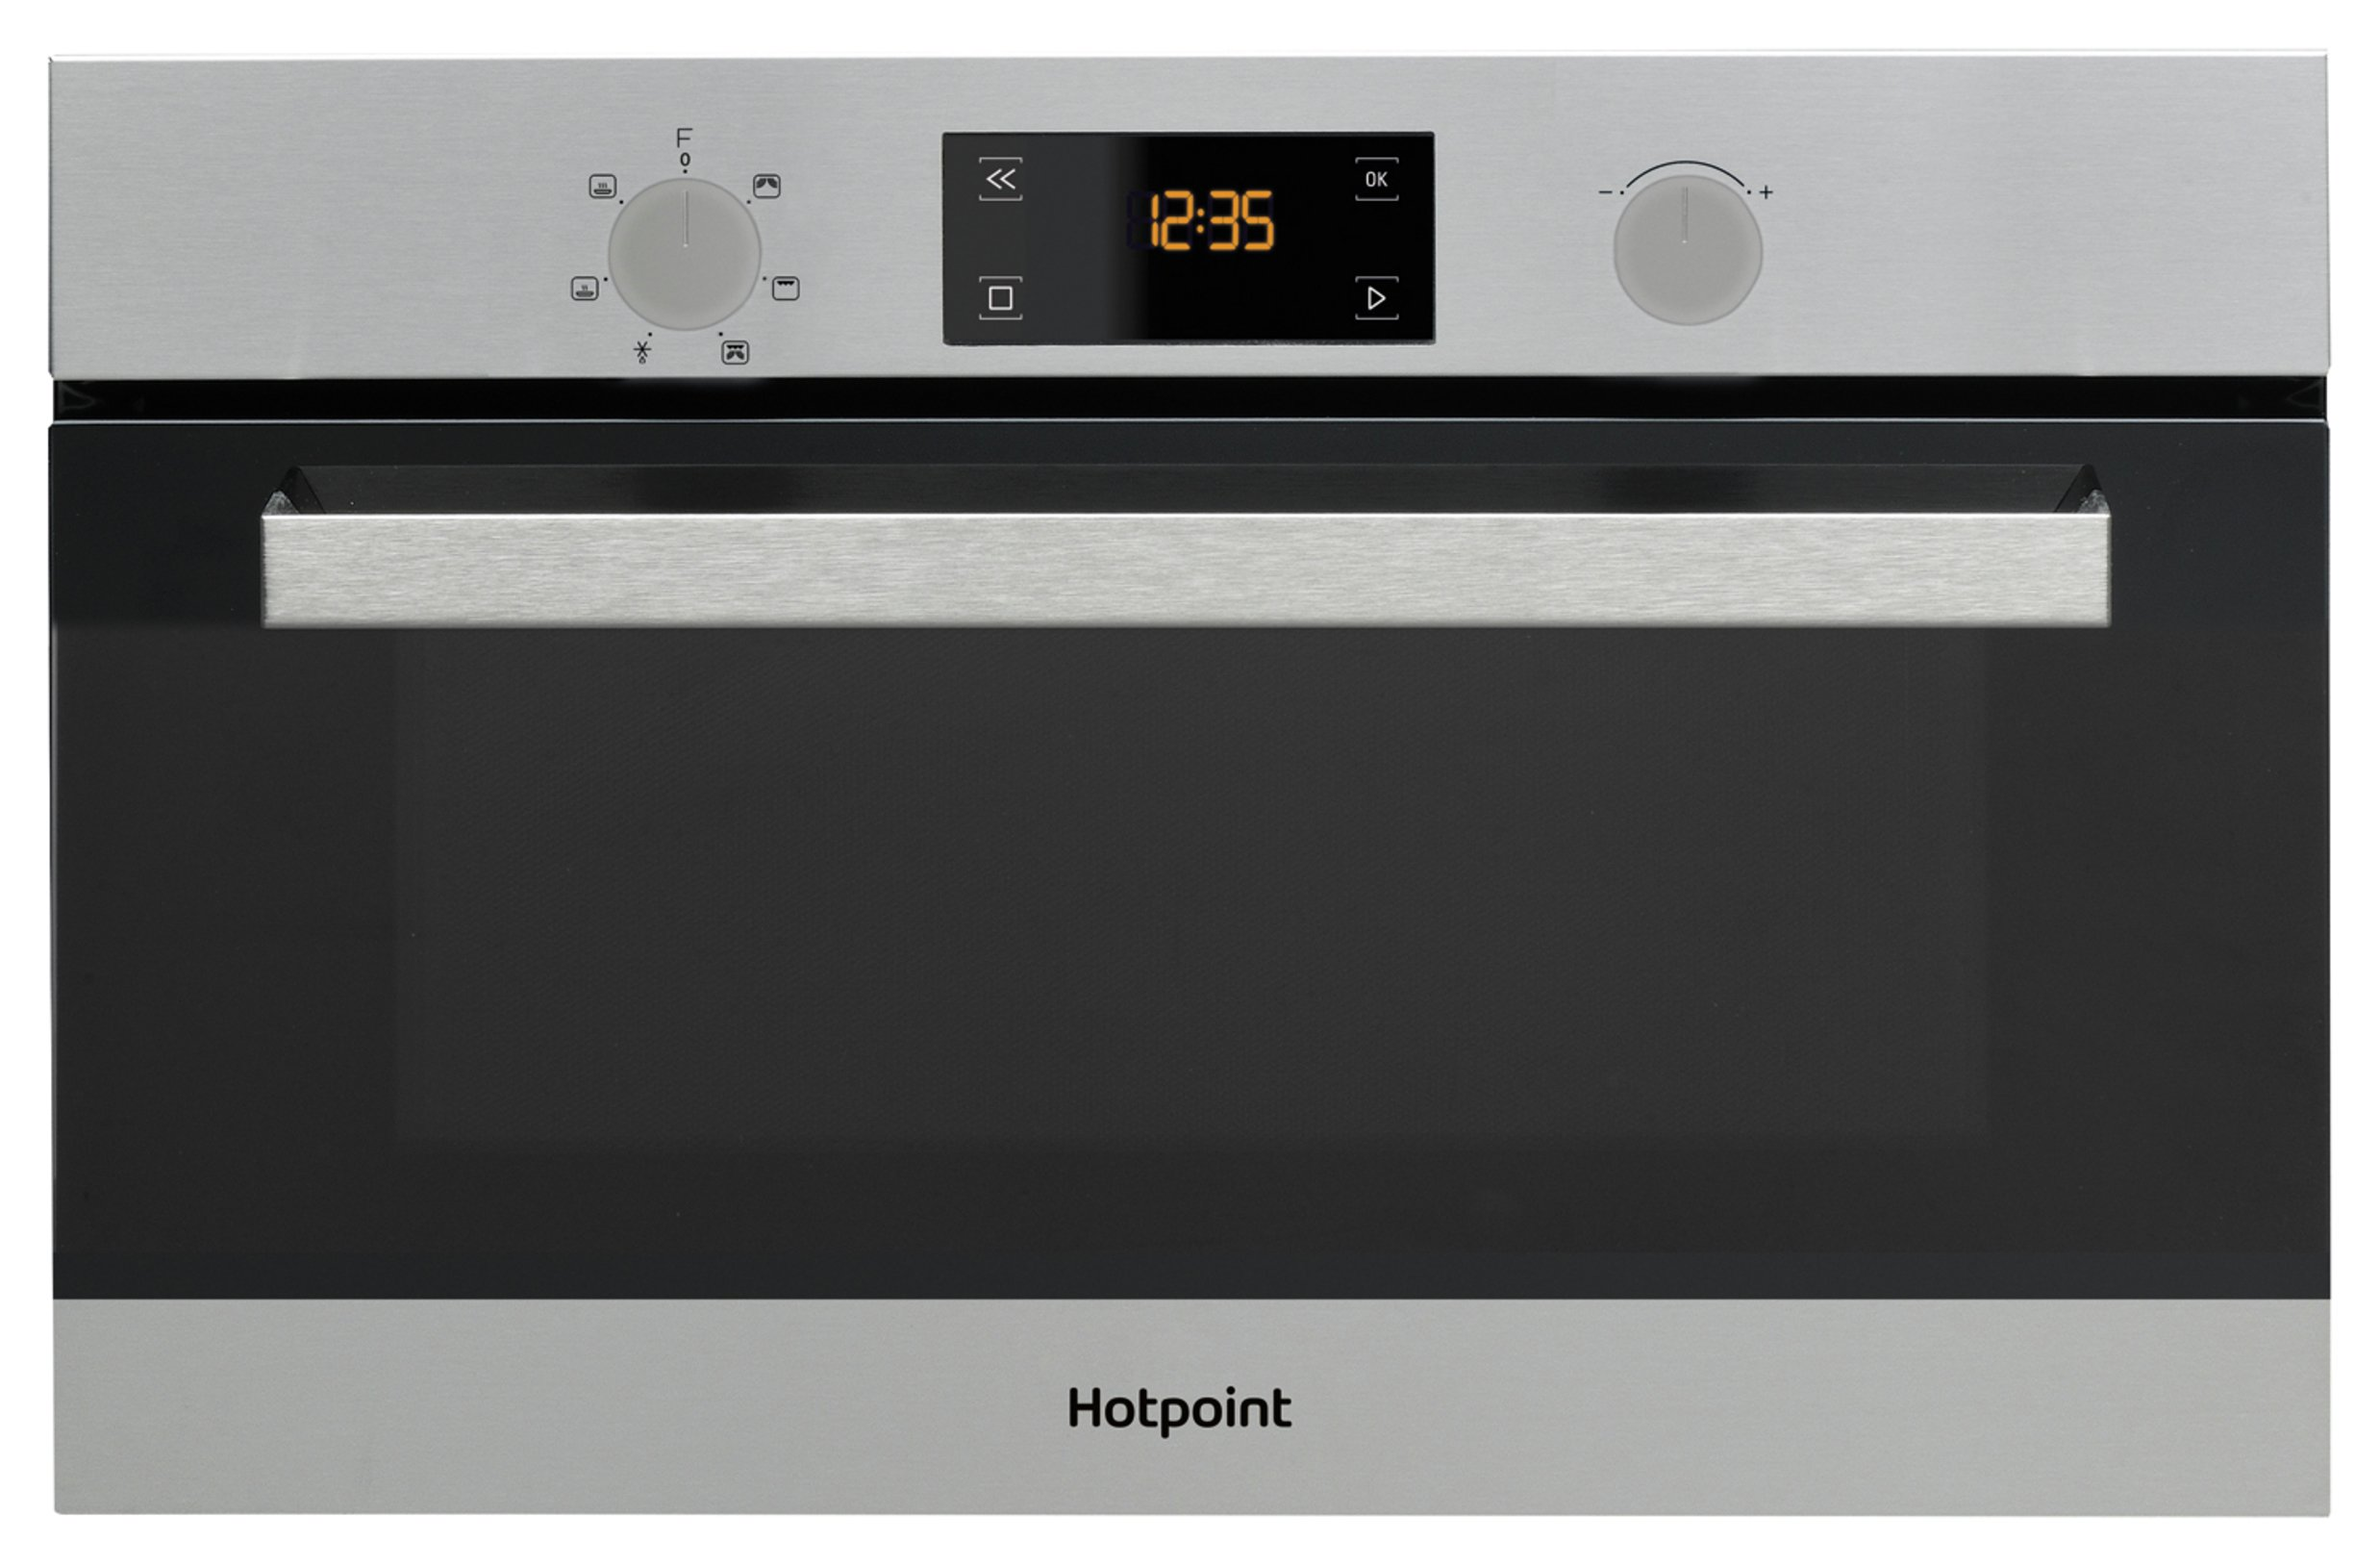 Hotpoint Class 3 MD 344 IX H Built-in Microwave - Stainless Steel Best Price and Cheapest